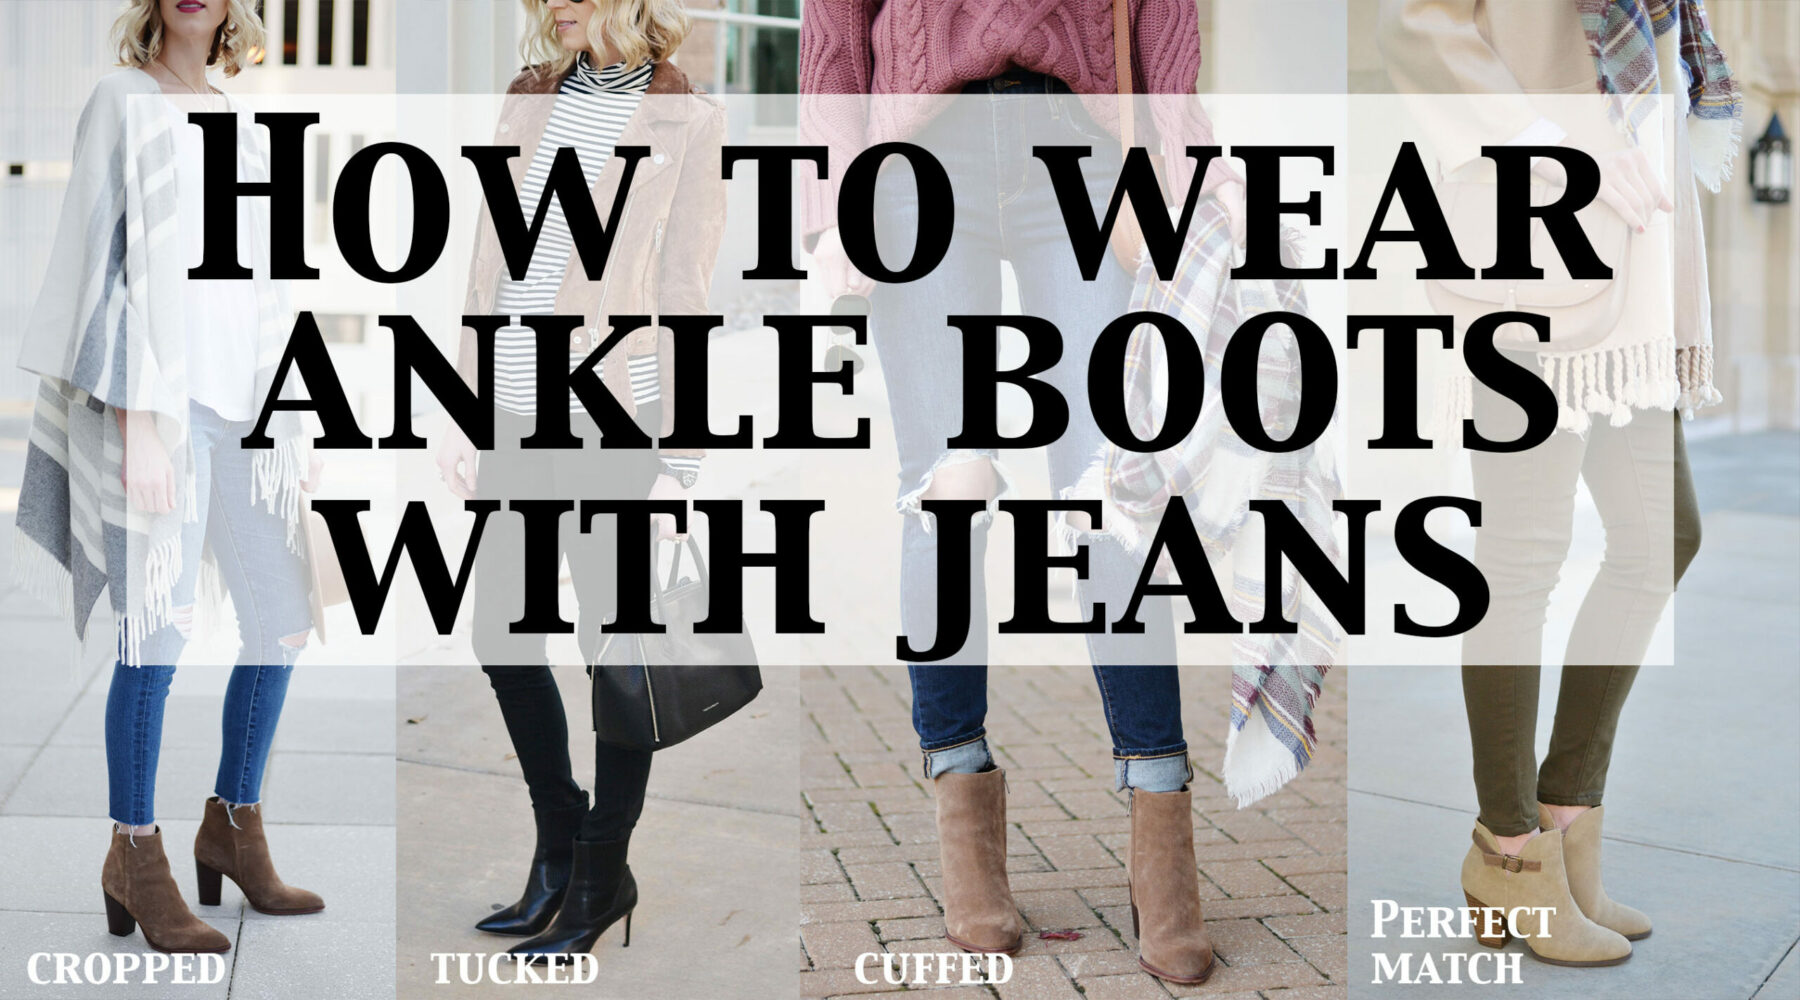 e5393bcd89c How to Wear Ankle Boots with Jeans - The Dos & Don'ts - Straight A Style